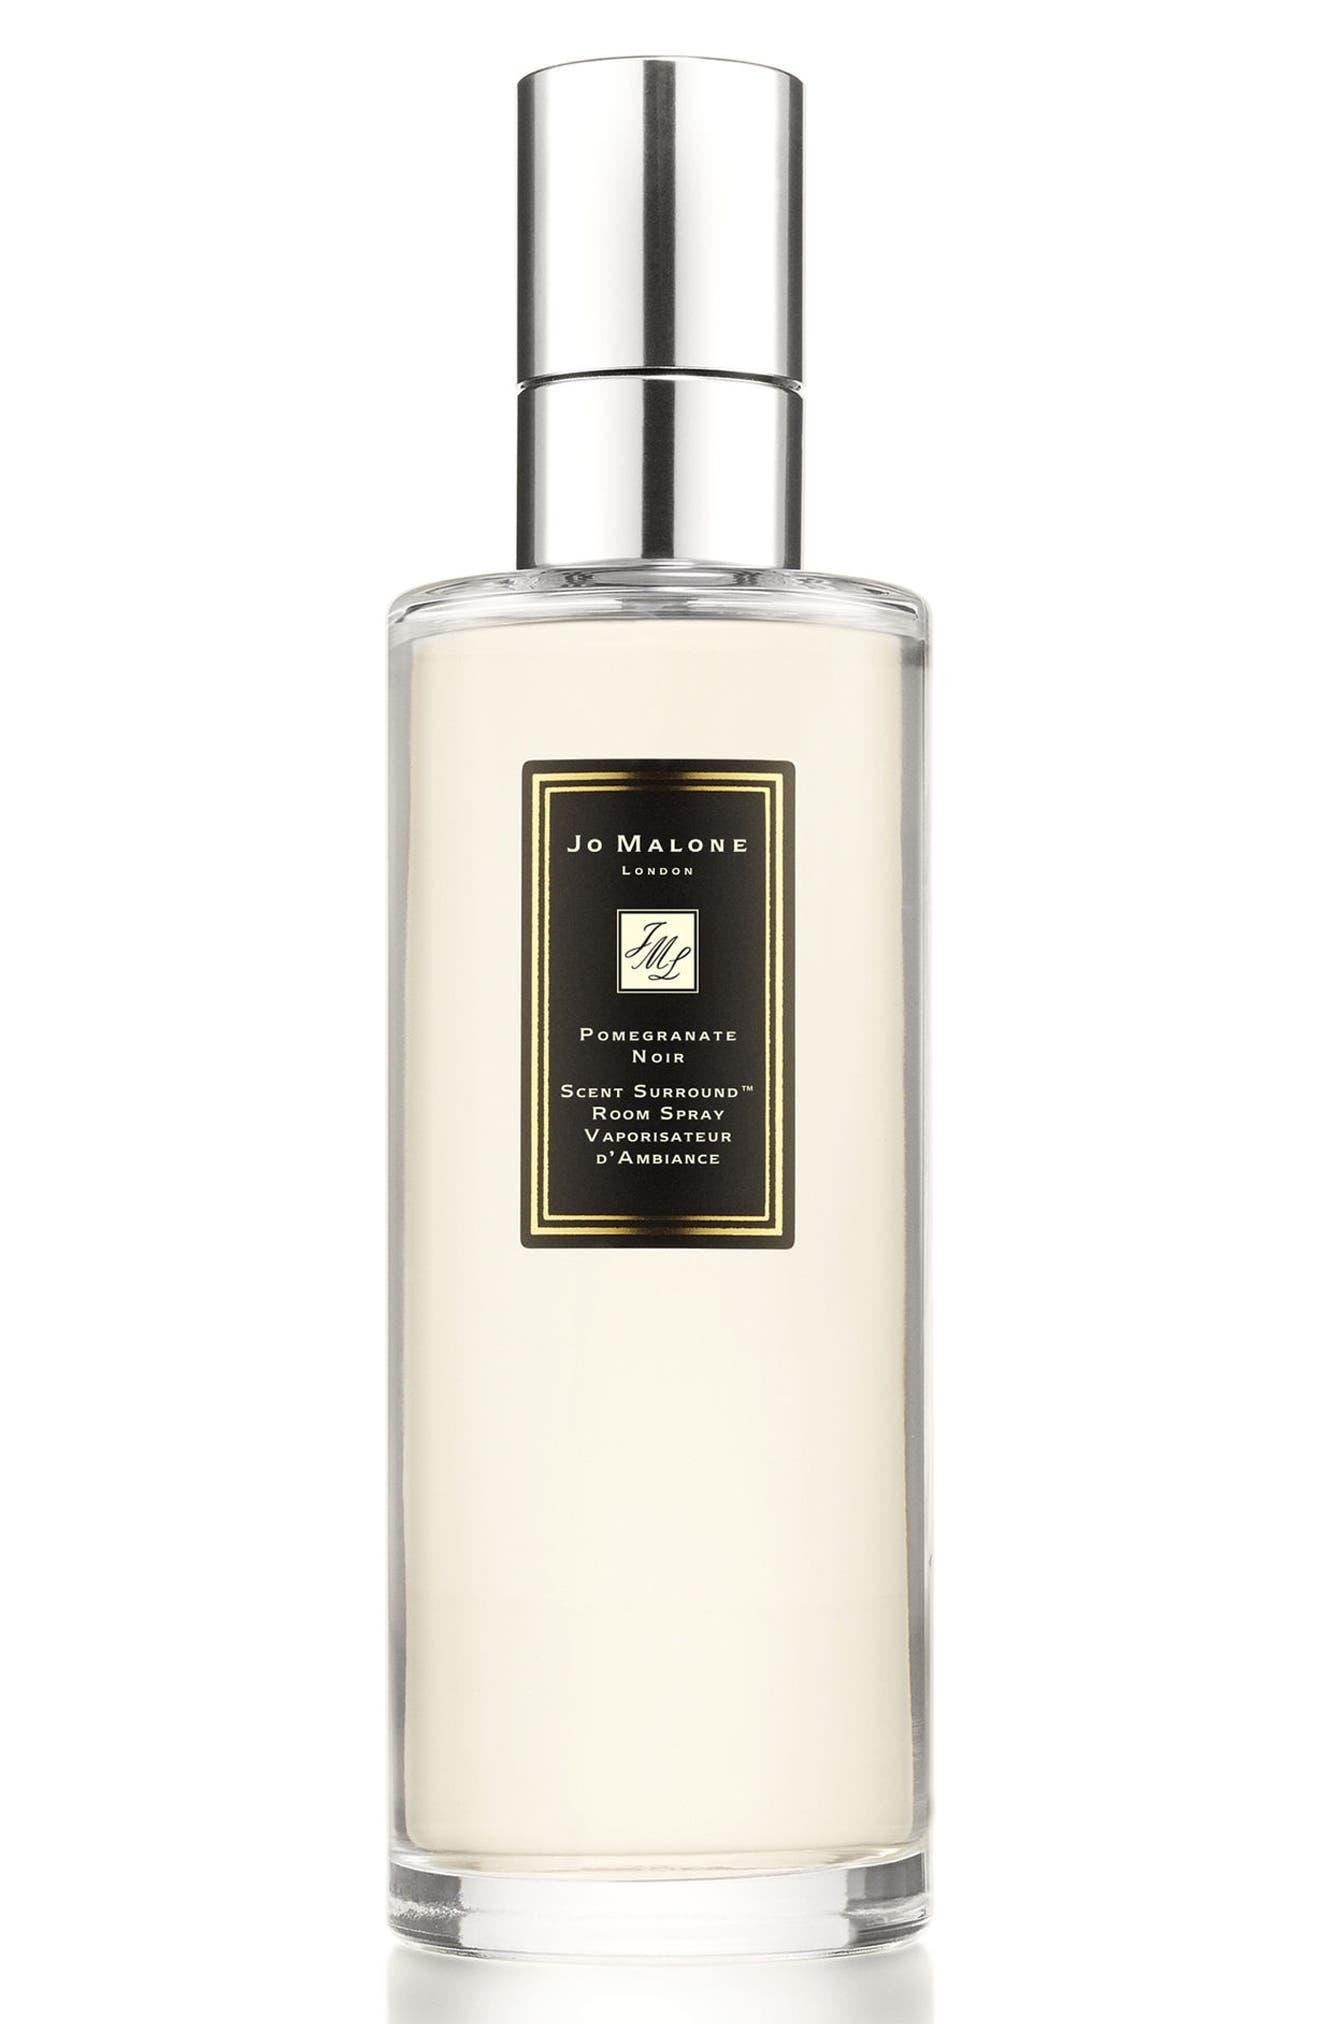 Jo Malone™ 'Pomegranate Noir' Scent Surround™ Room Spray